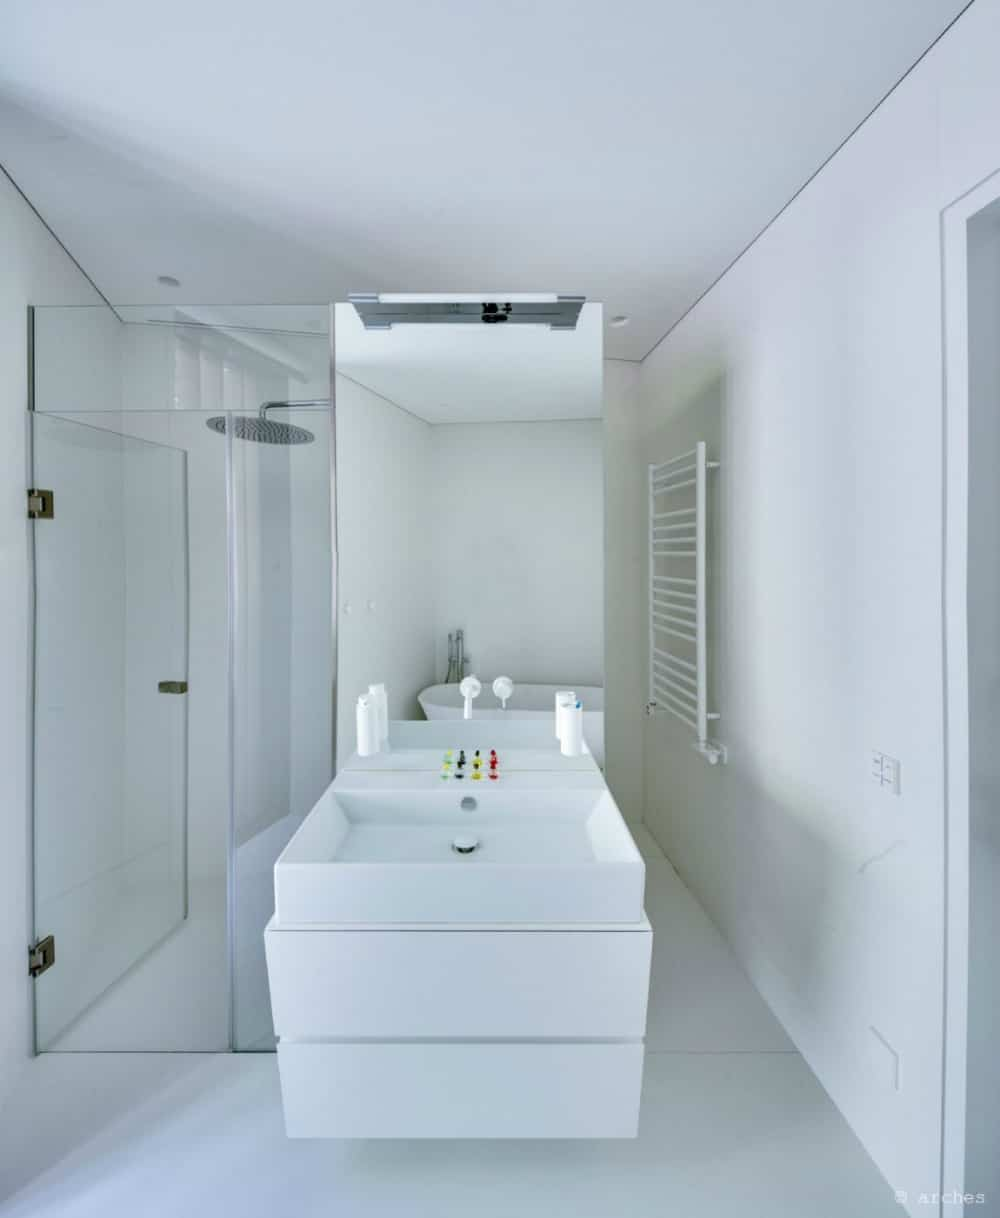 Bathroom vanity separates the shower from the tub